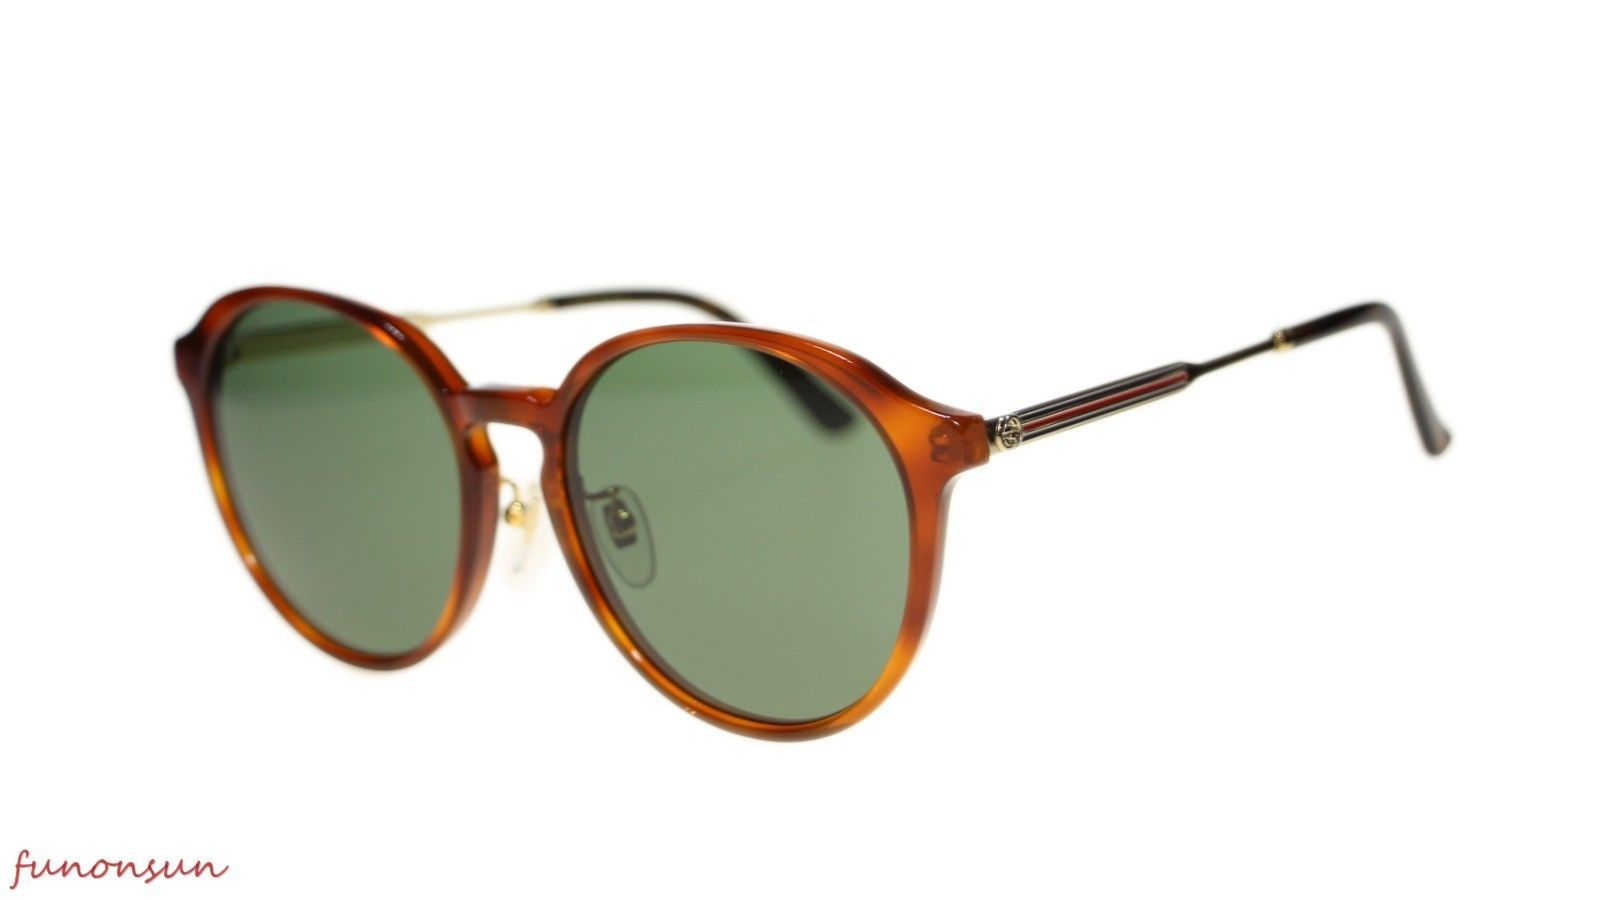 49d0da964b S l1600. S l1600. Previous. New Gucci Unisex Sunglasses GG0205SK 004 Havana  Green Lens Round 57mm Authentic